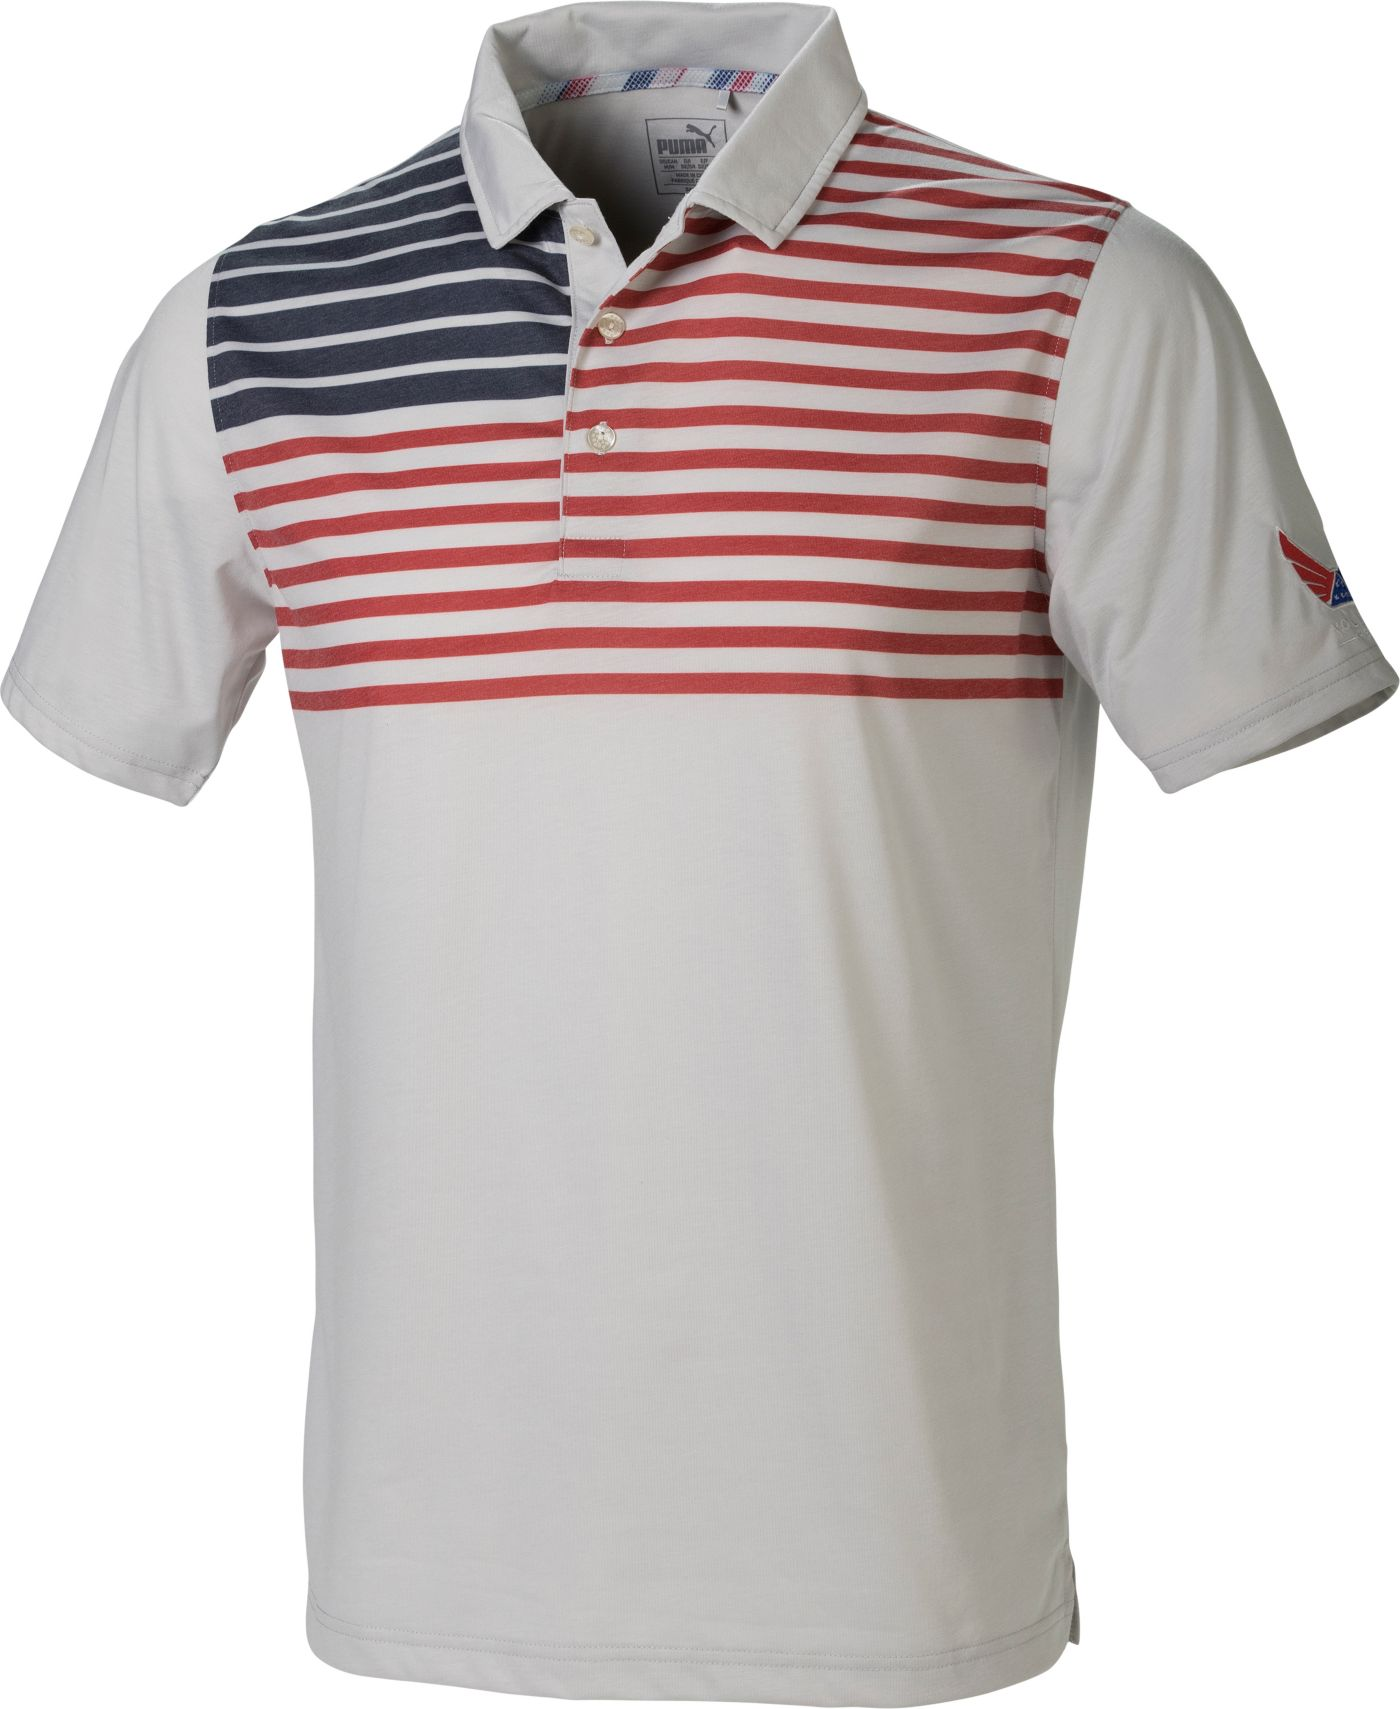 PUMA Men's Volition Patriot Golf Polo